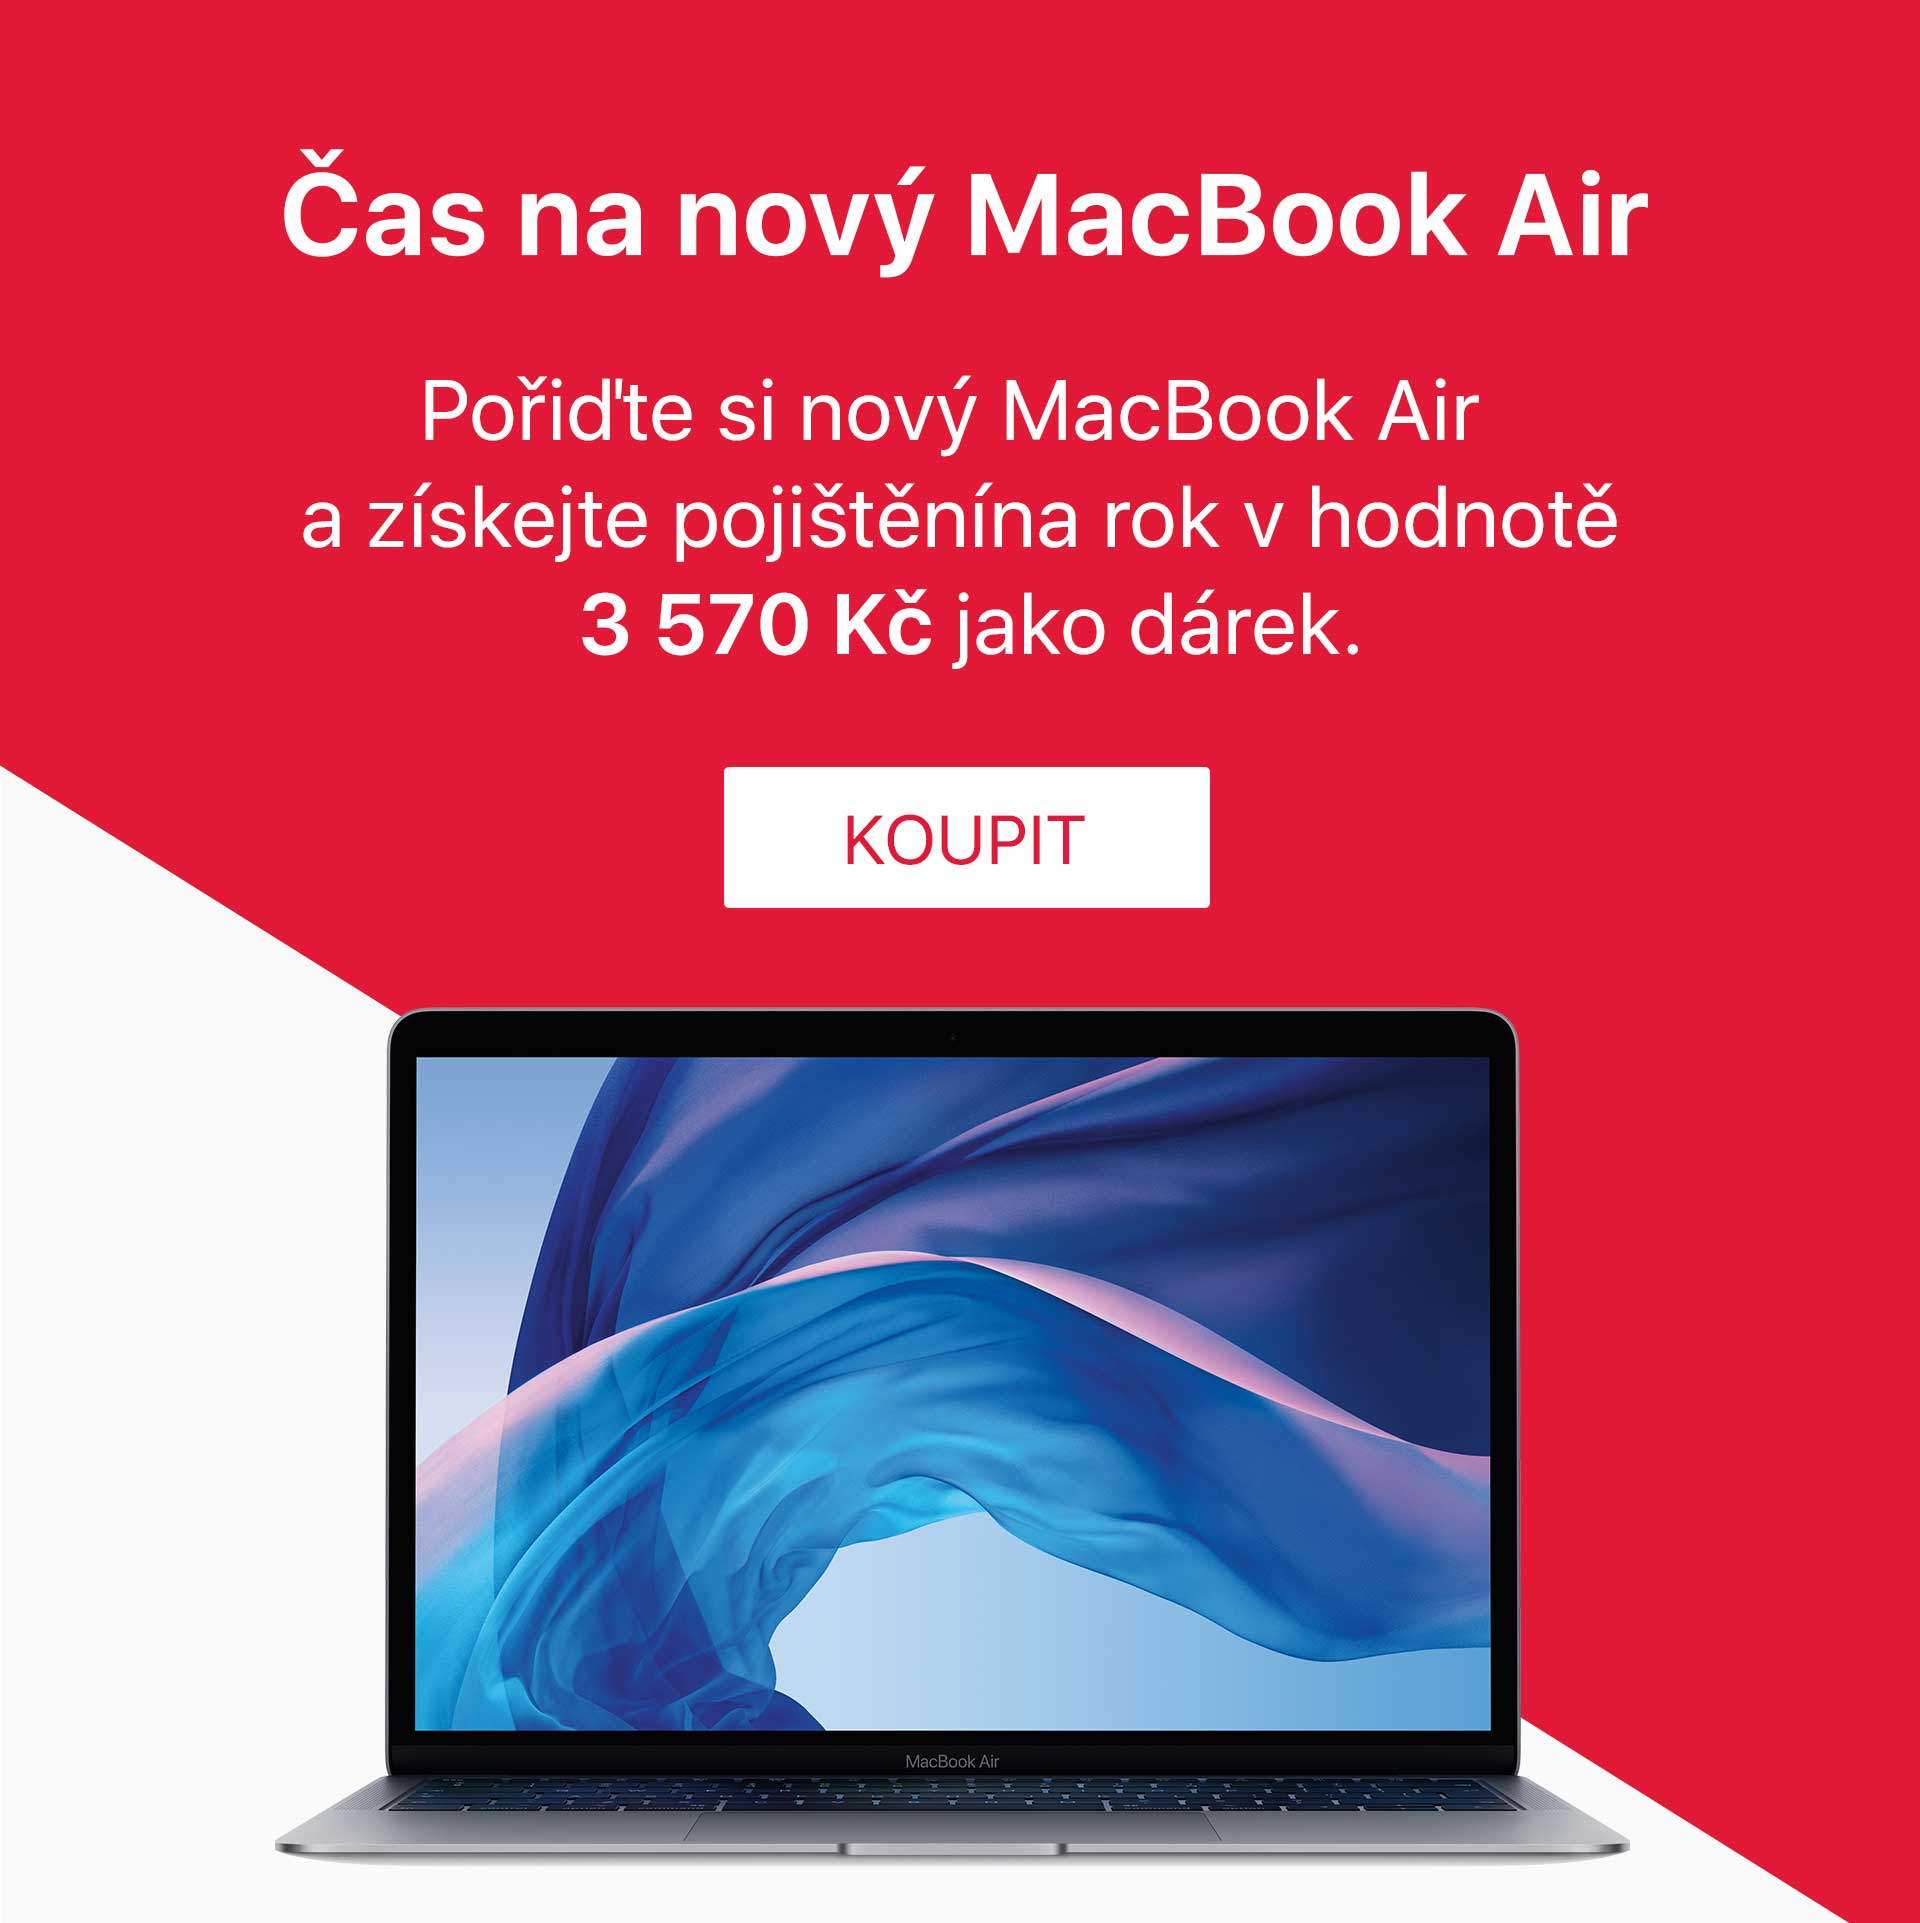 MacBook Air + pojisteni